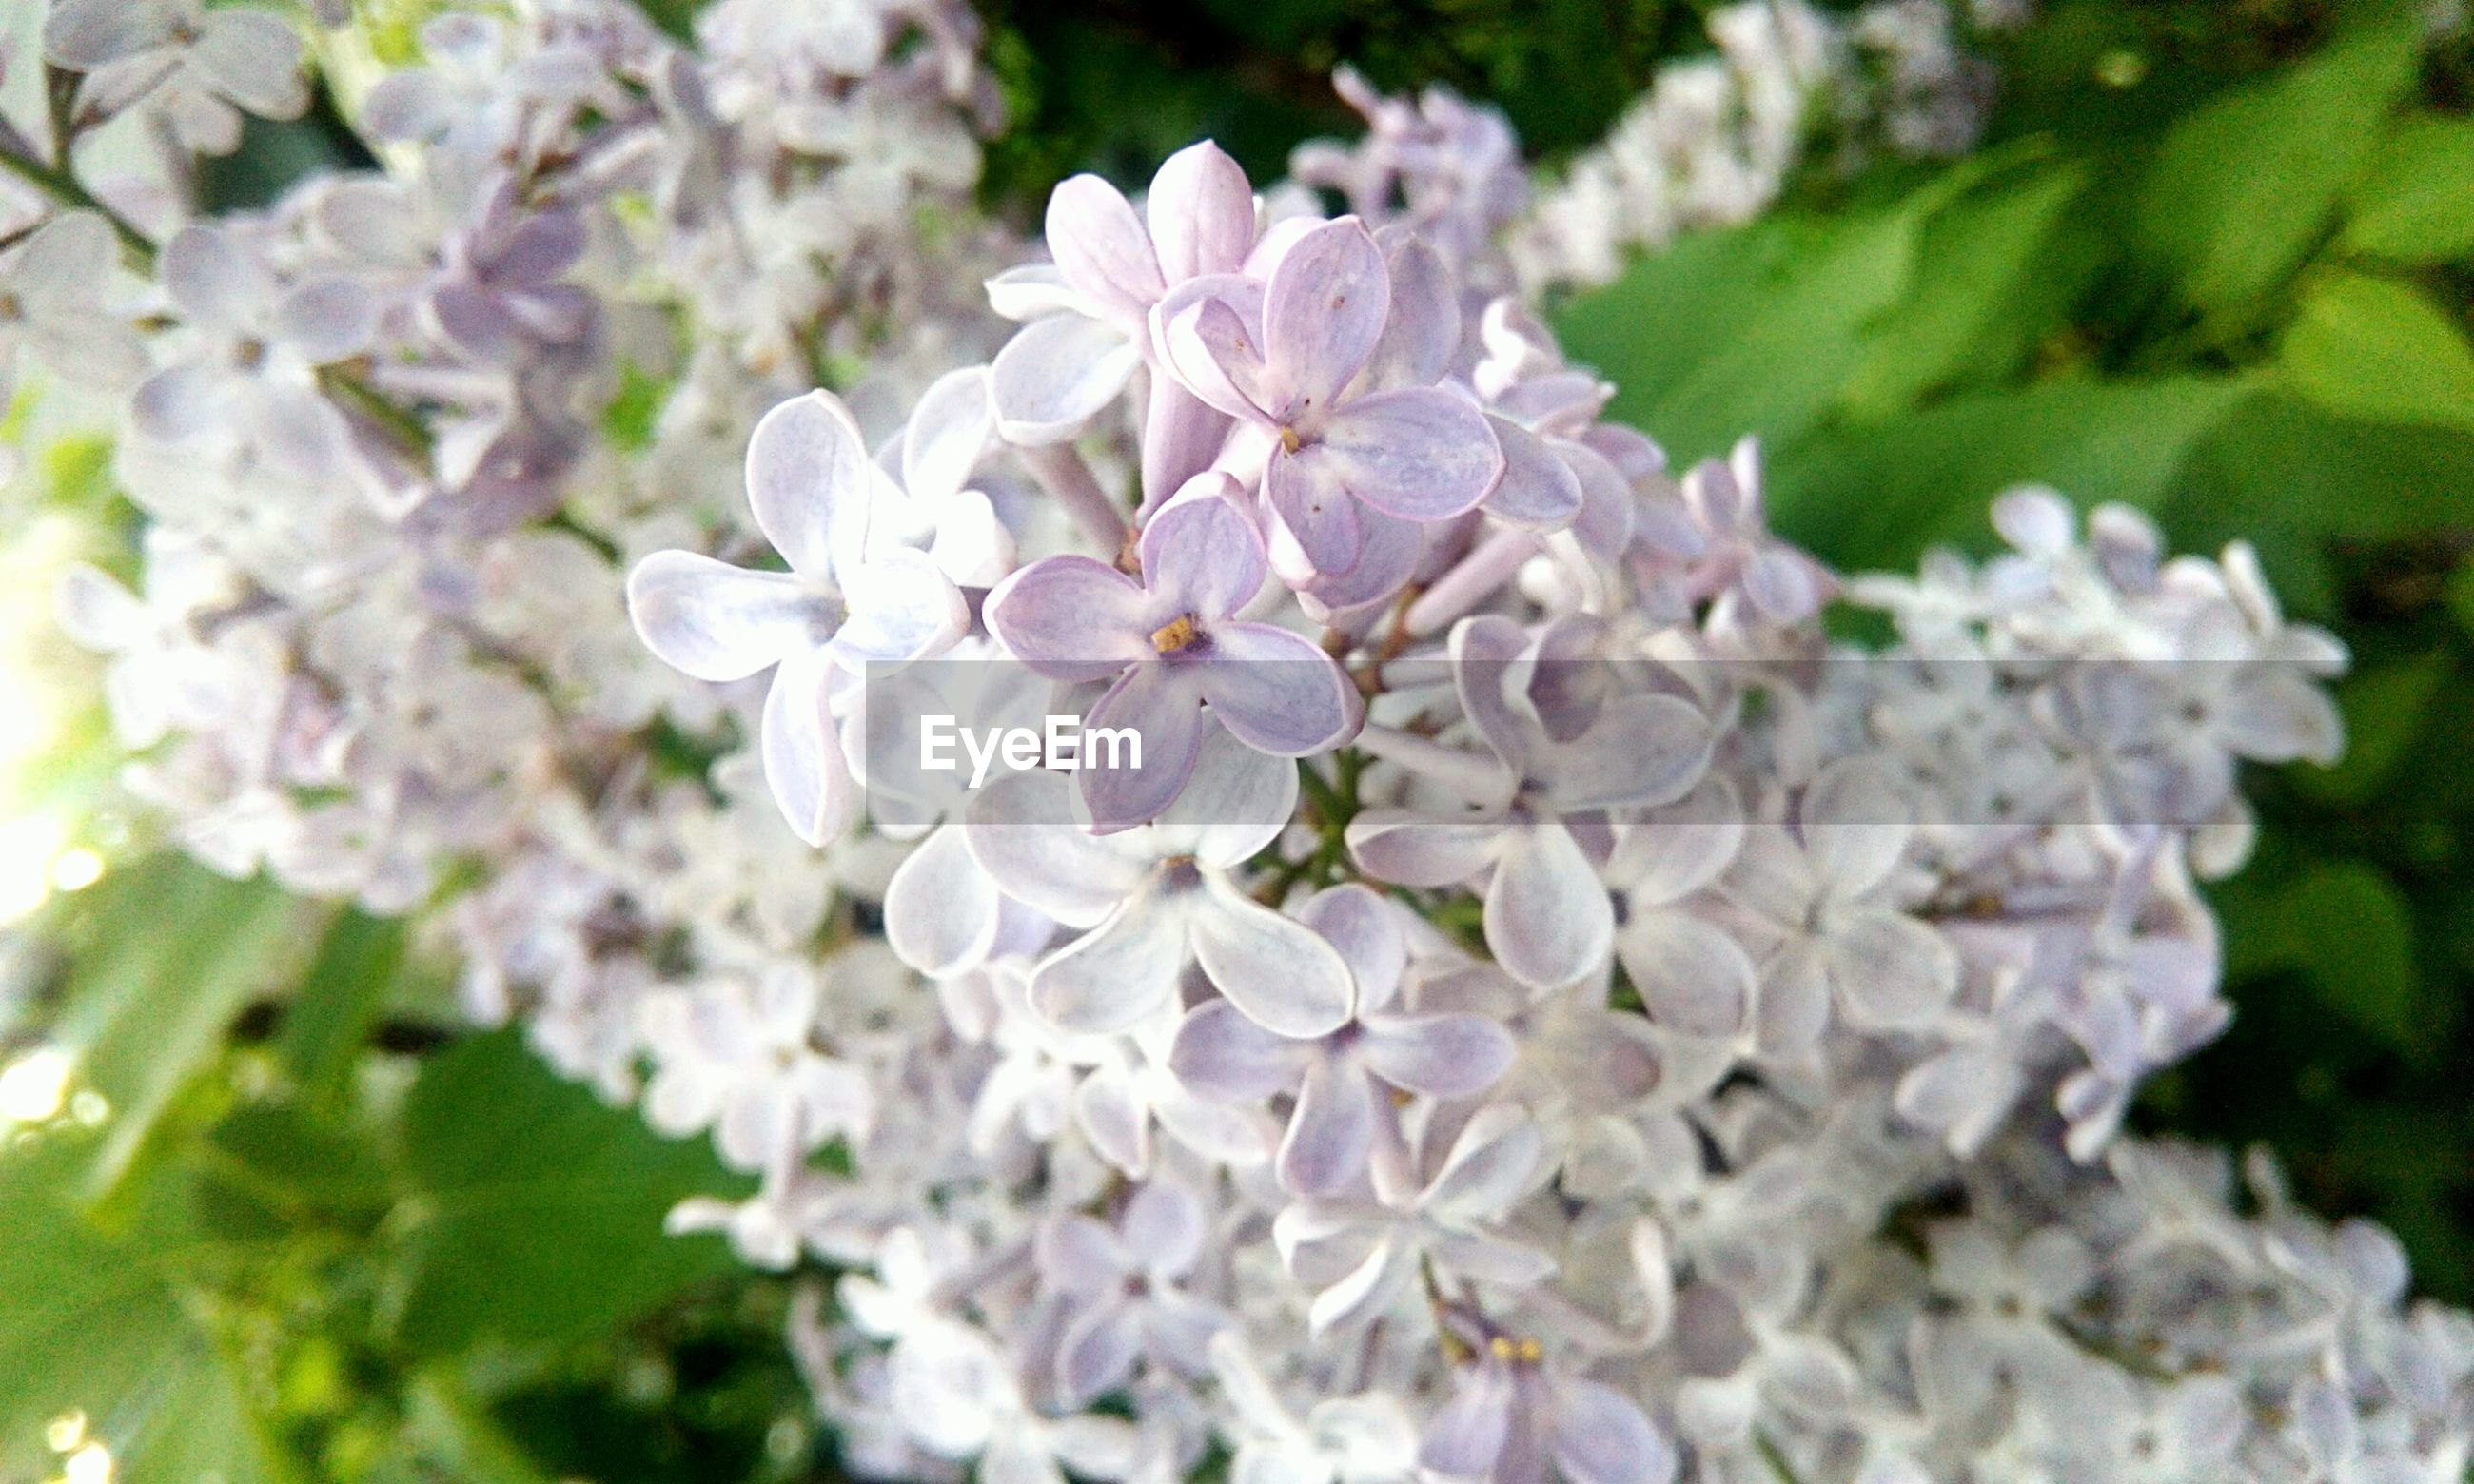 flower, flowering plant, plant, fragility, vulnerability, beauty in nature, growth, petal, freshness, nature, inflorescence, flower head, white color, close-up, day, focus on foreground, lilac, blossom, no people, outdoors, purple, bunch of flowers, spring